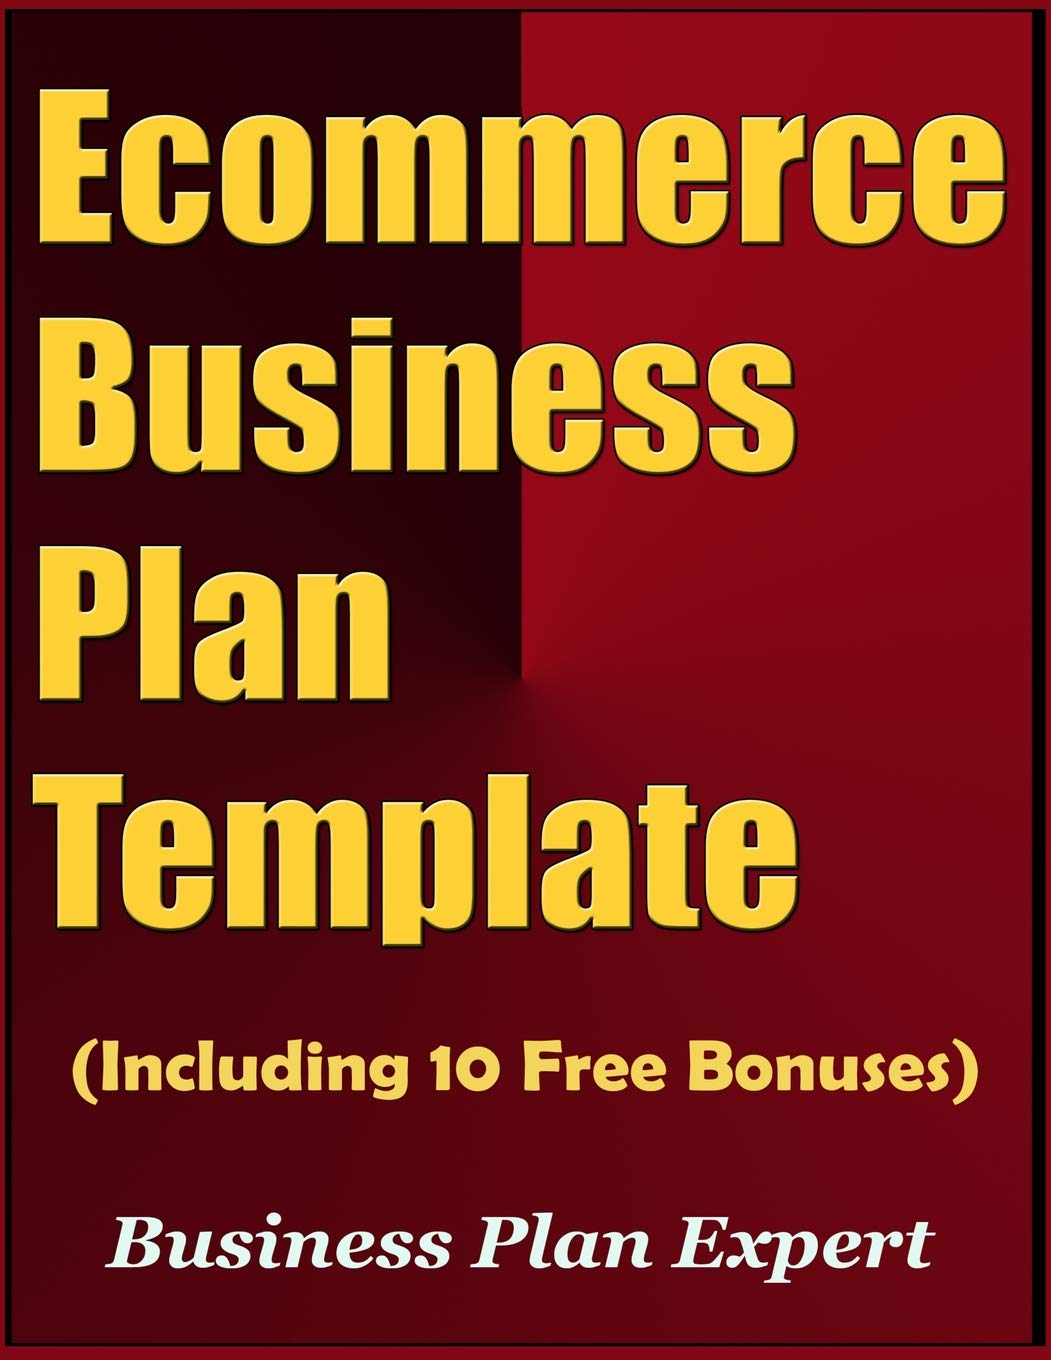 Ecommerce Business Plan Template Including 10 Free Bonuses